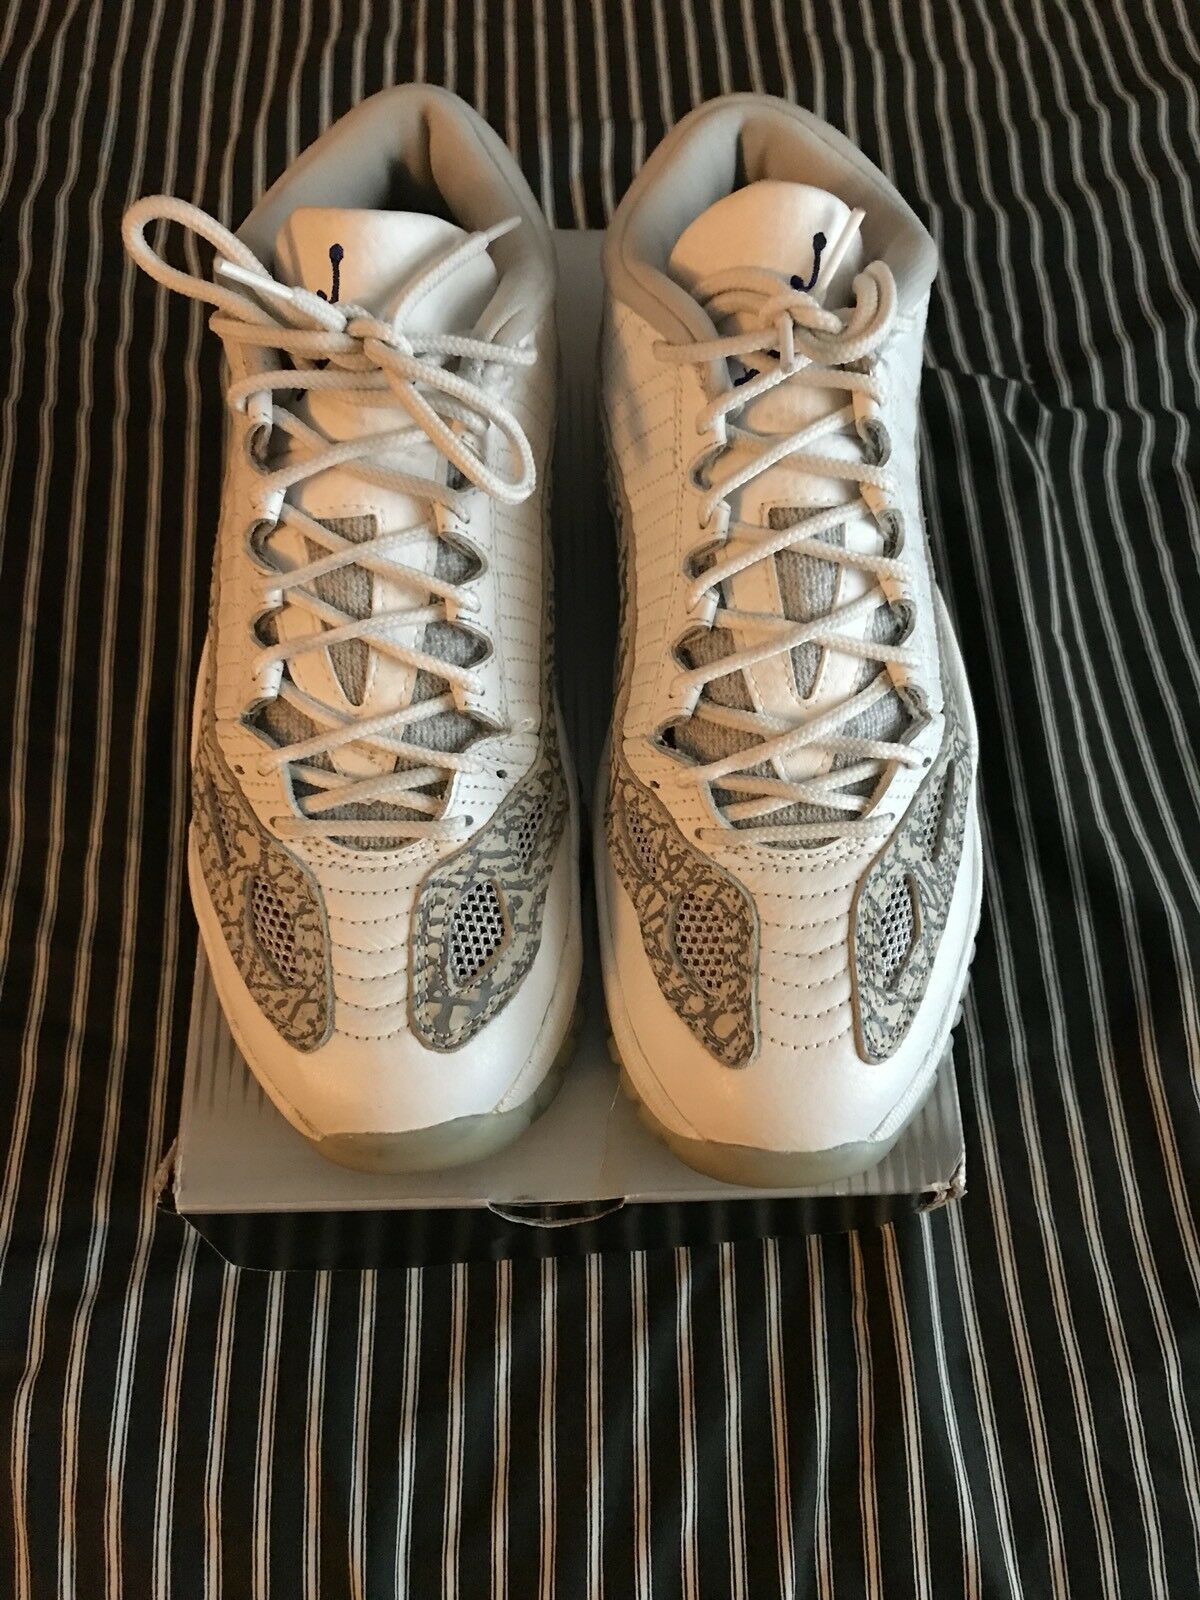 Nike Air Jordan Low 11 XI Low IE White Zen Grey Cobalt size 8 With Og Box R Card best-selling model of the brand